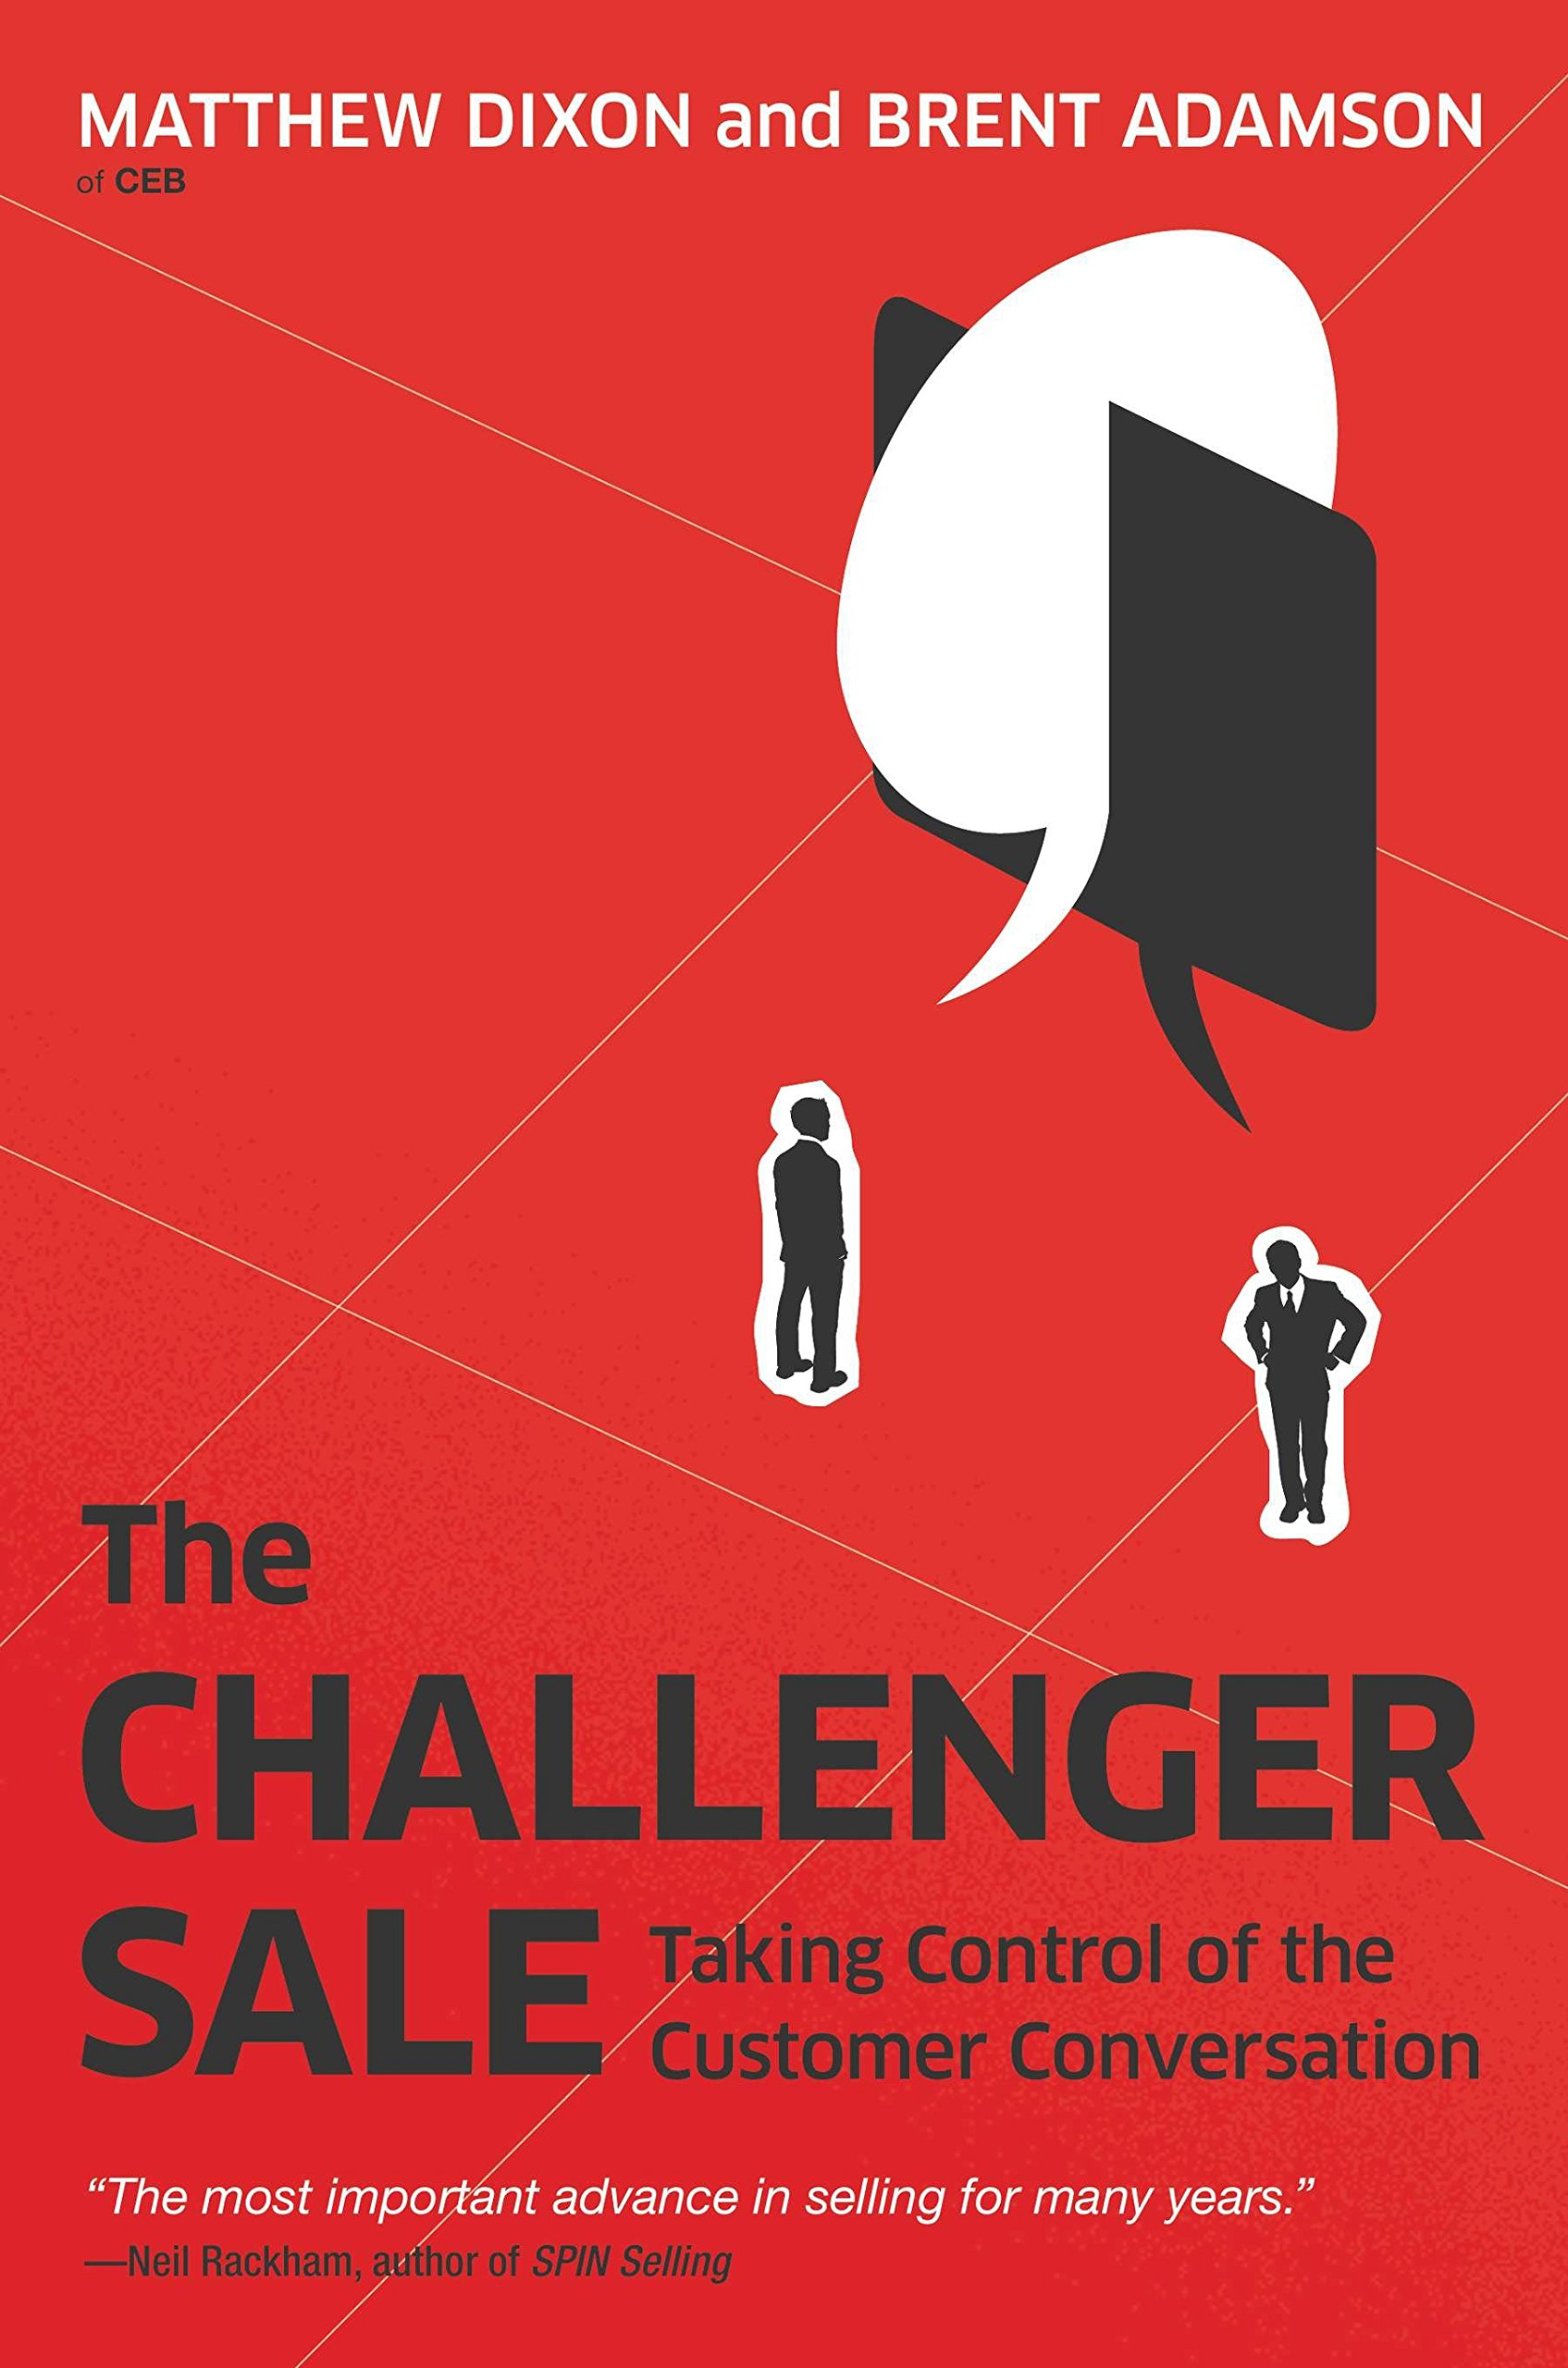 The Challenger Sale is a book catered to salesmen or agencies looking to develop stronger relationships with their clients and close sales.